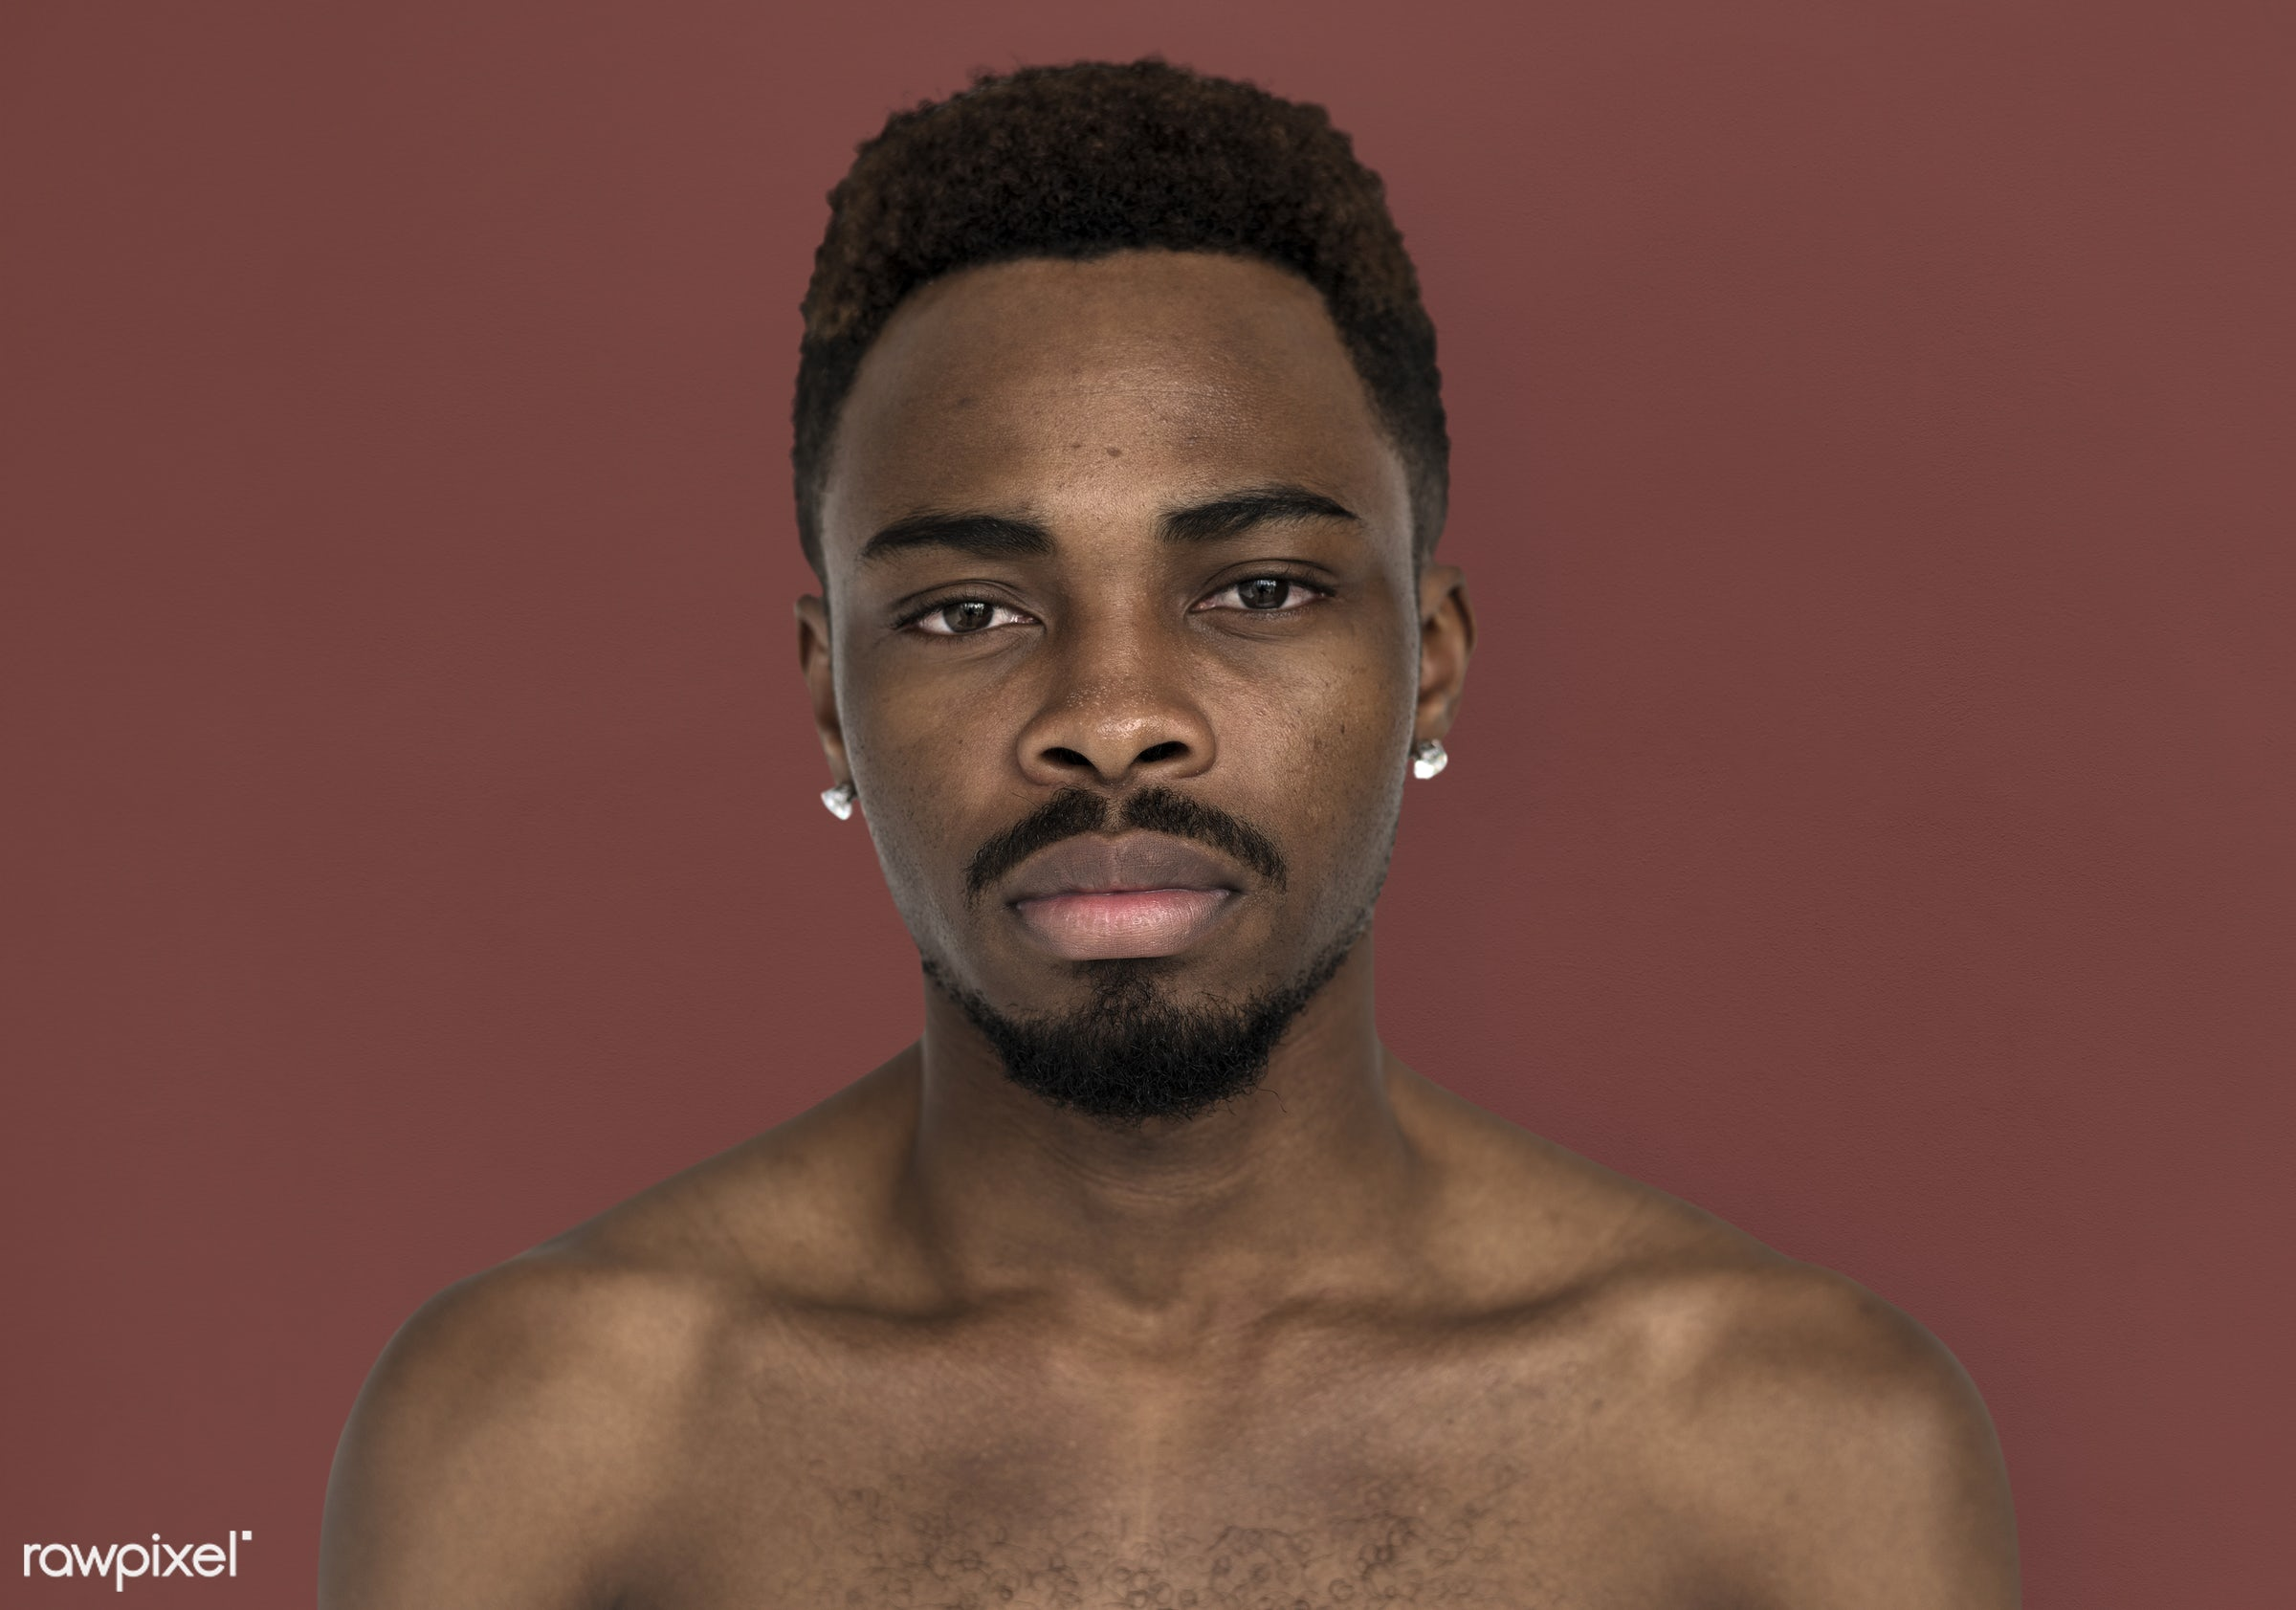 studio, face, person, people, bare chest, solo, cold, serious, man, black, earrings, isolated, topless, guy, african descent...